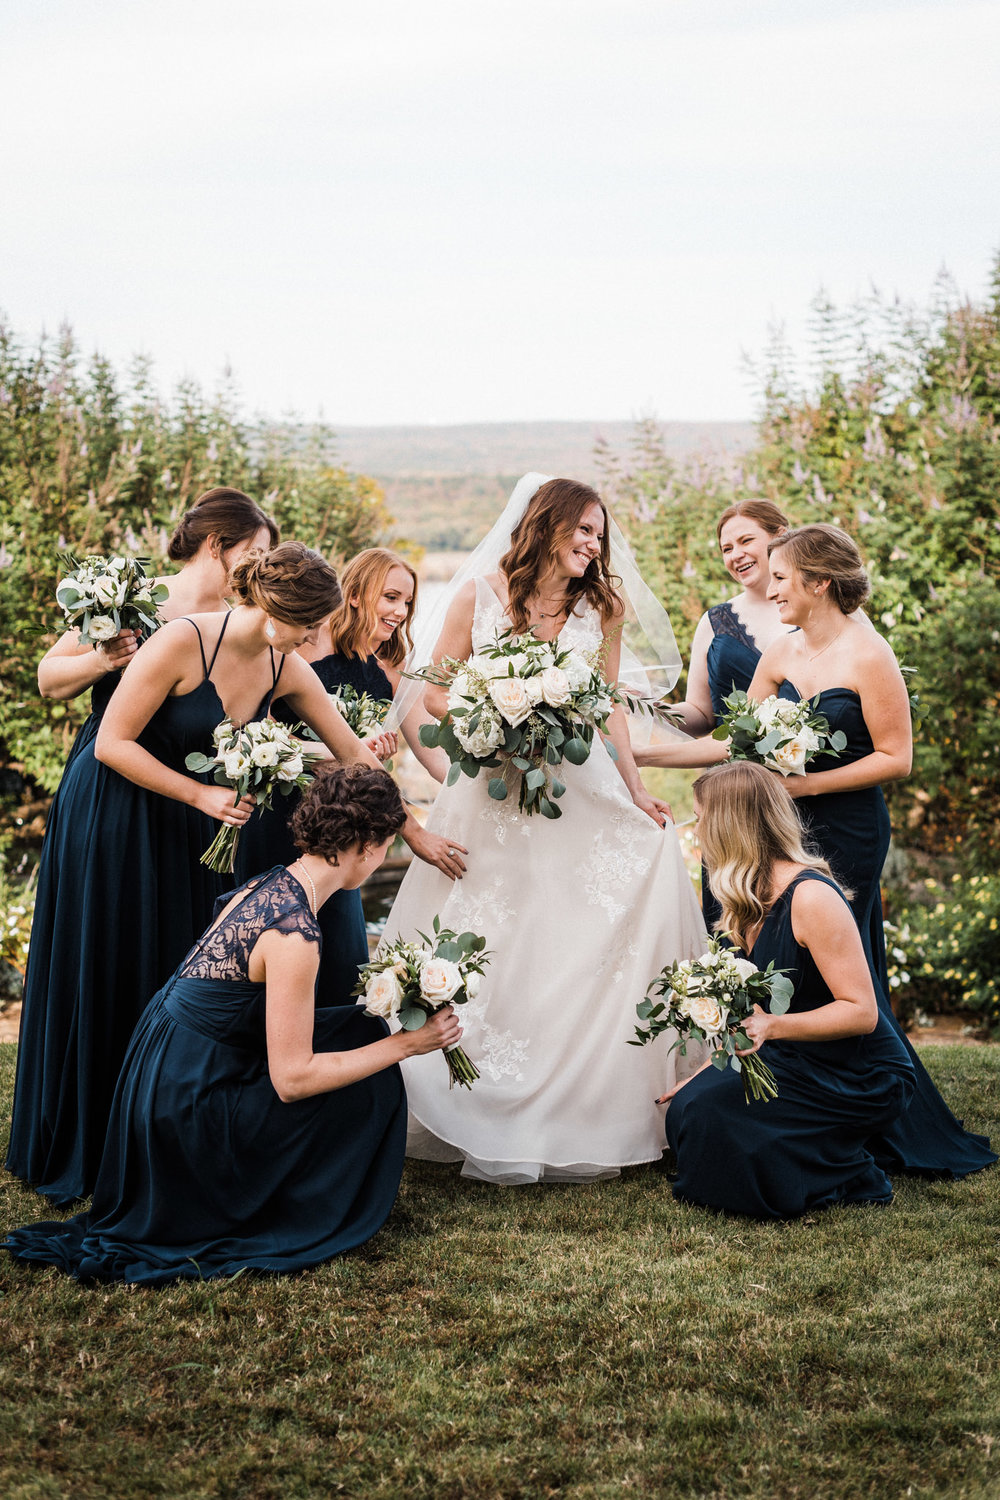 Tanner Burge Photography - Moss Mountain Farms Wedding with Sarah & Colin // Bridesmaids.jpg